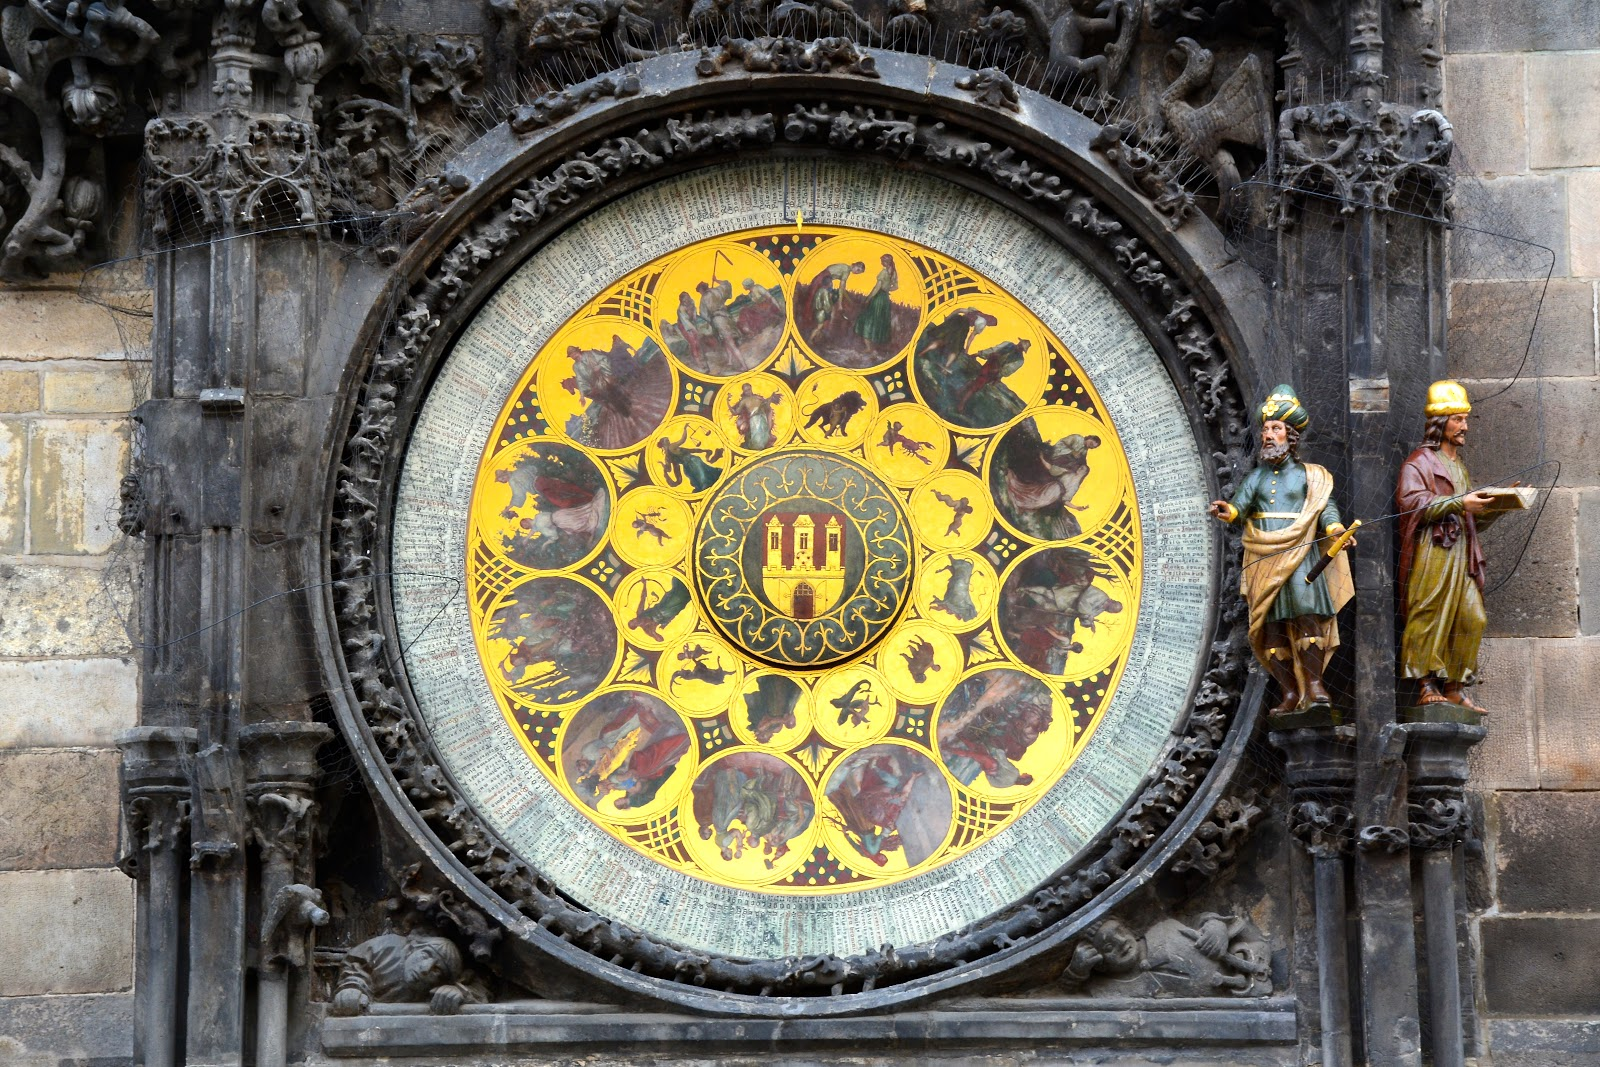 Prague's astronomical clock calendar face